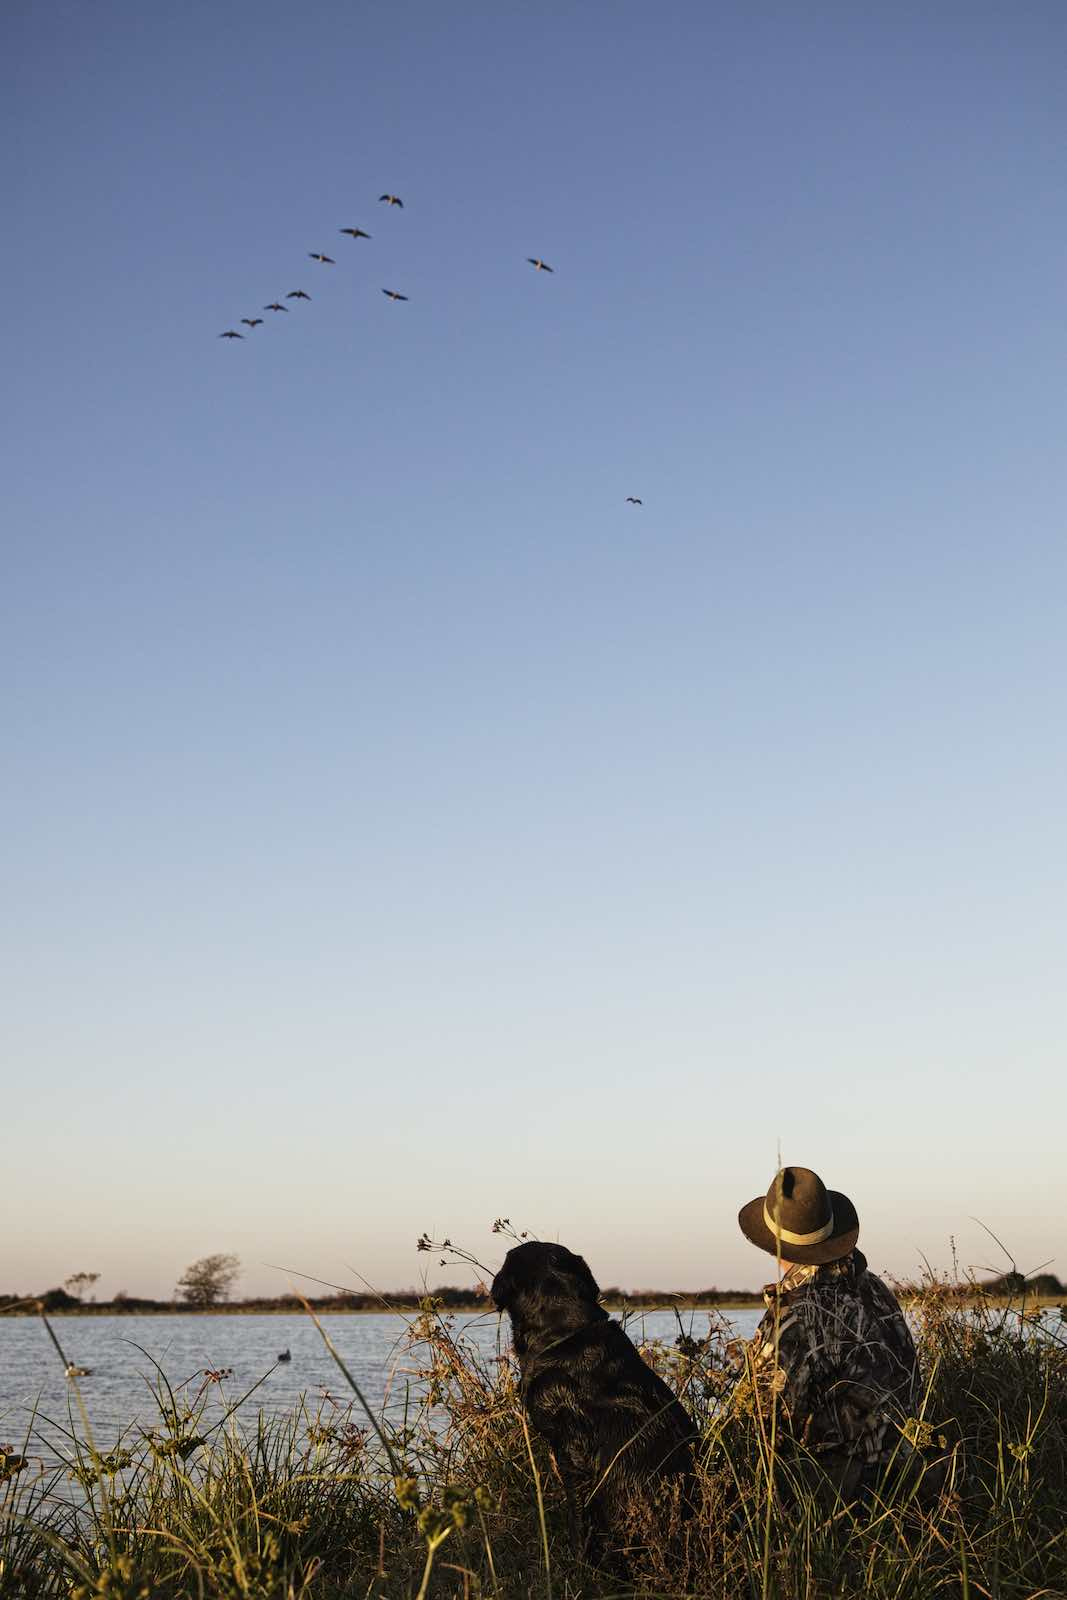 Jody Horton Photography - Hunter and his dog watching ducks fly above a lake.